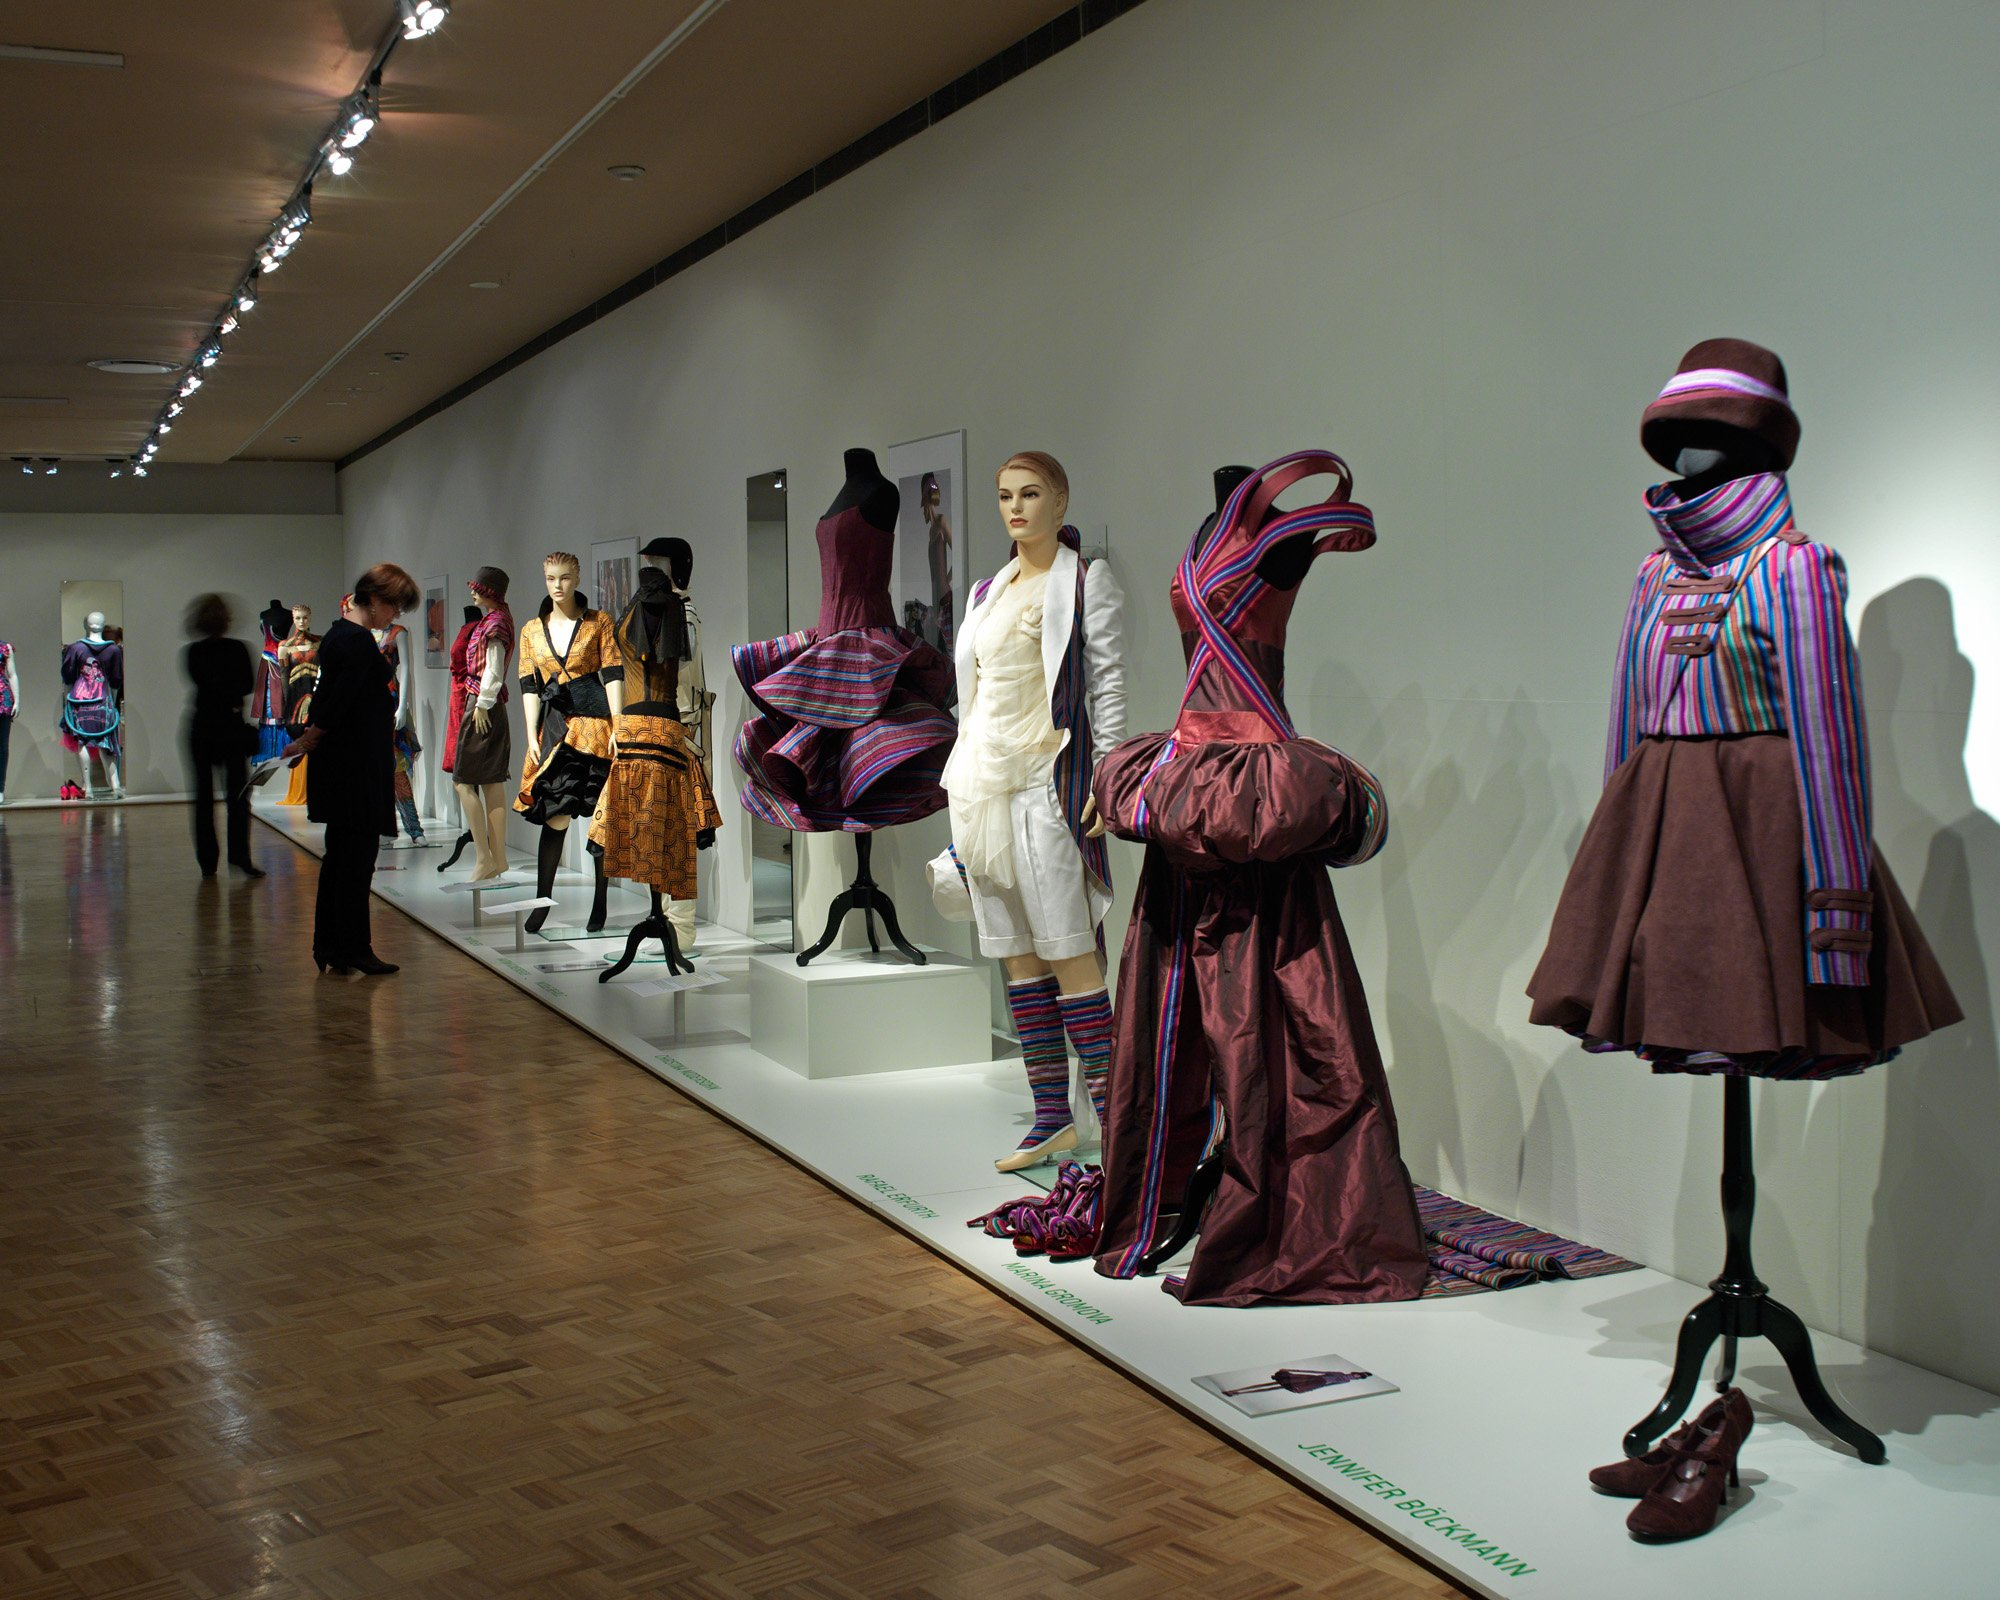 Fair Fashion, zaaloverzicht 2 - John Stoel.jpg